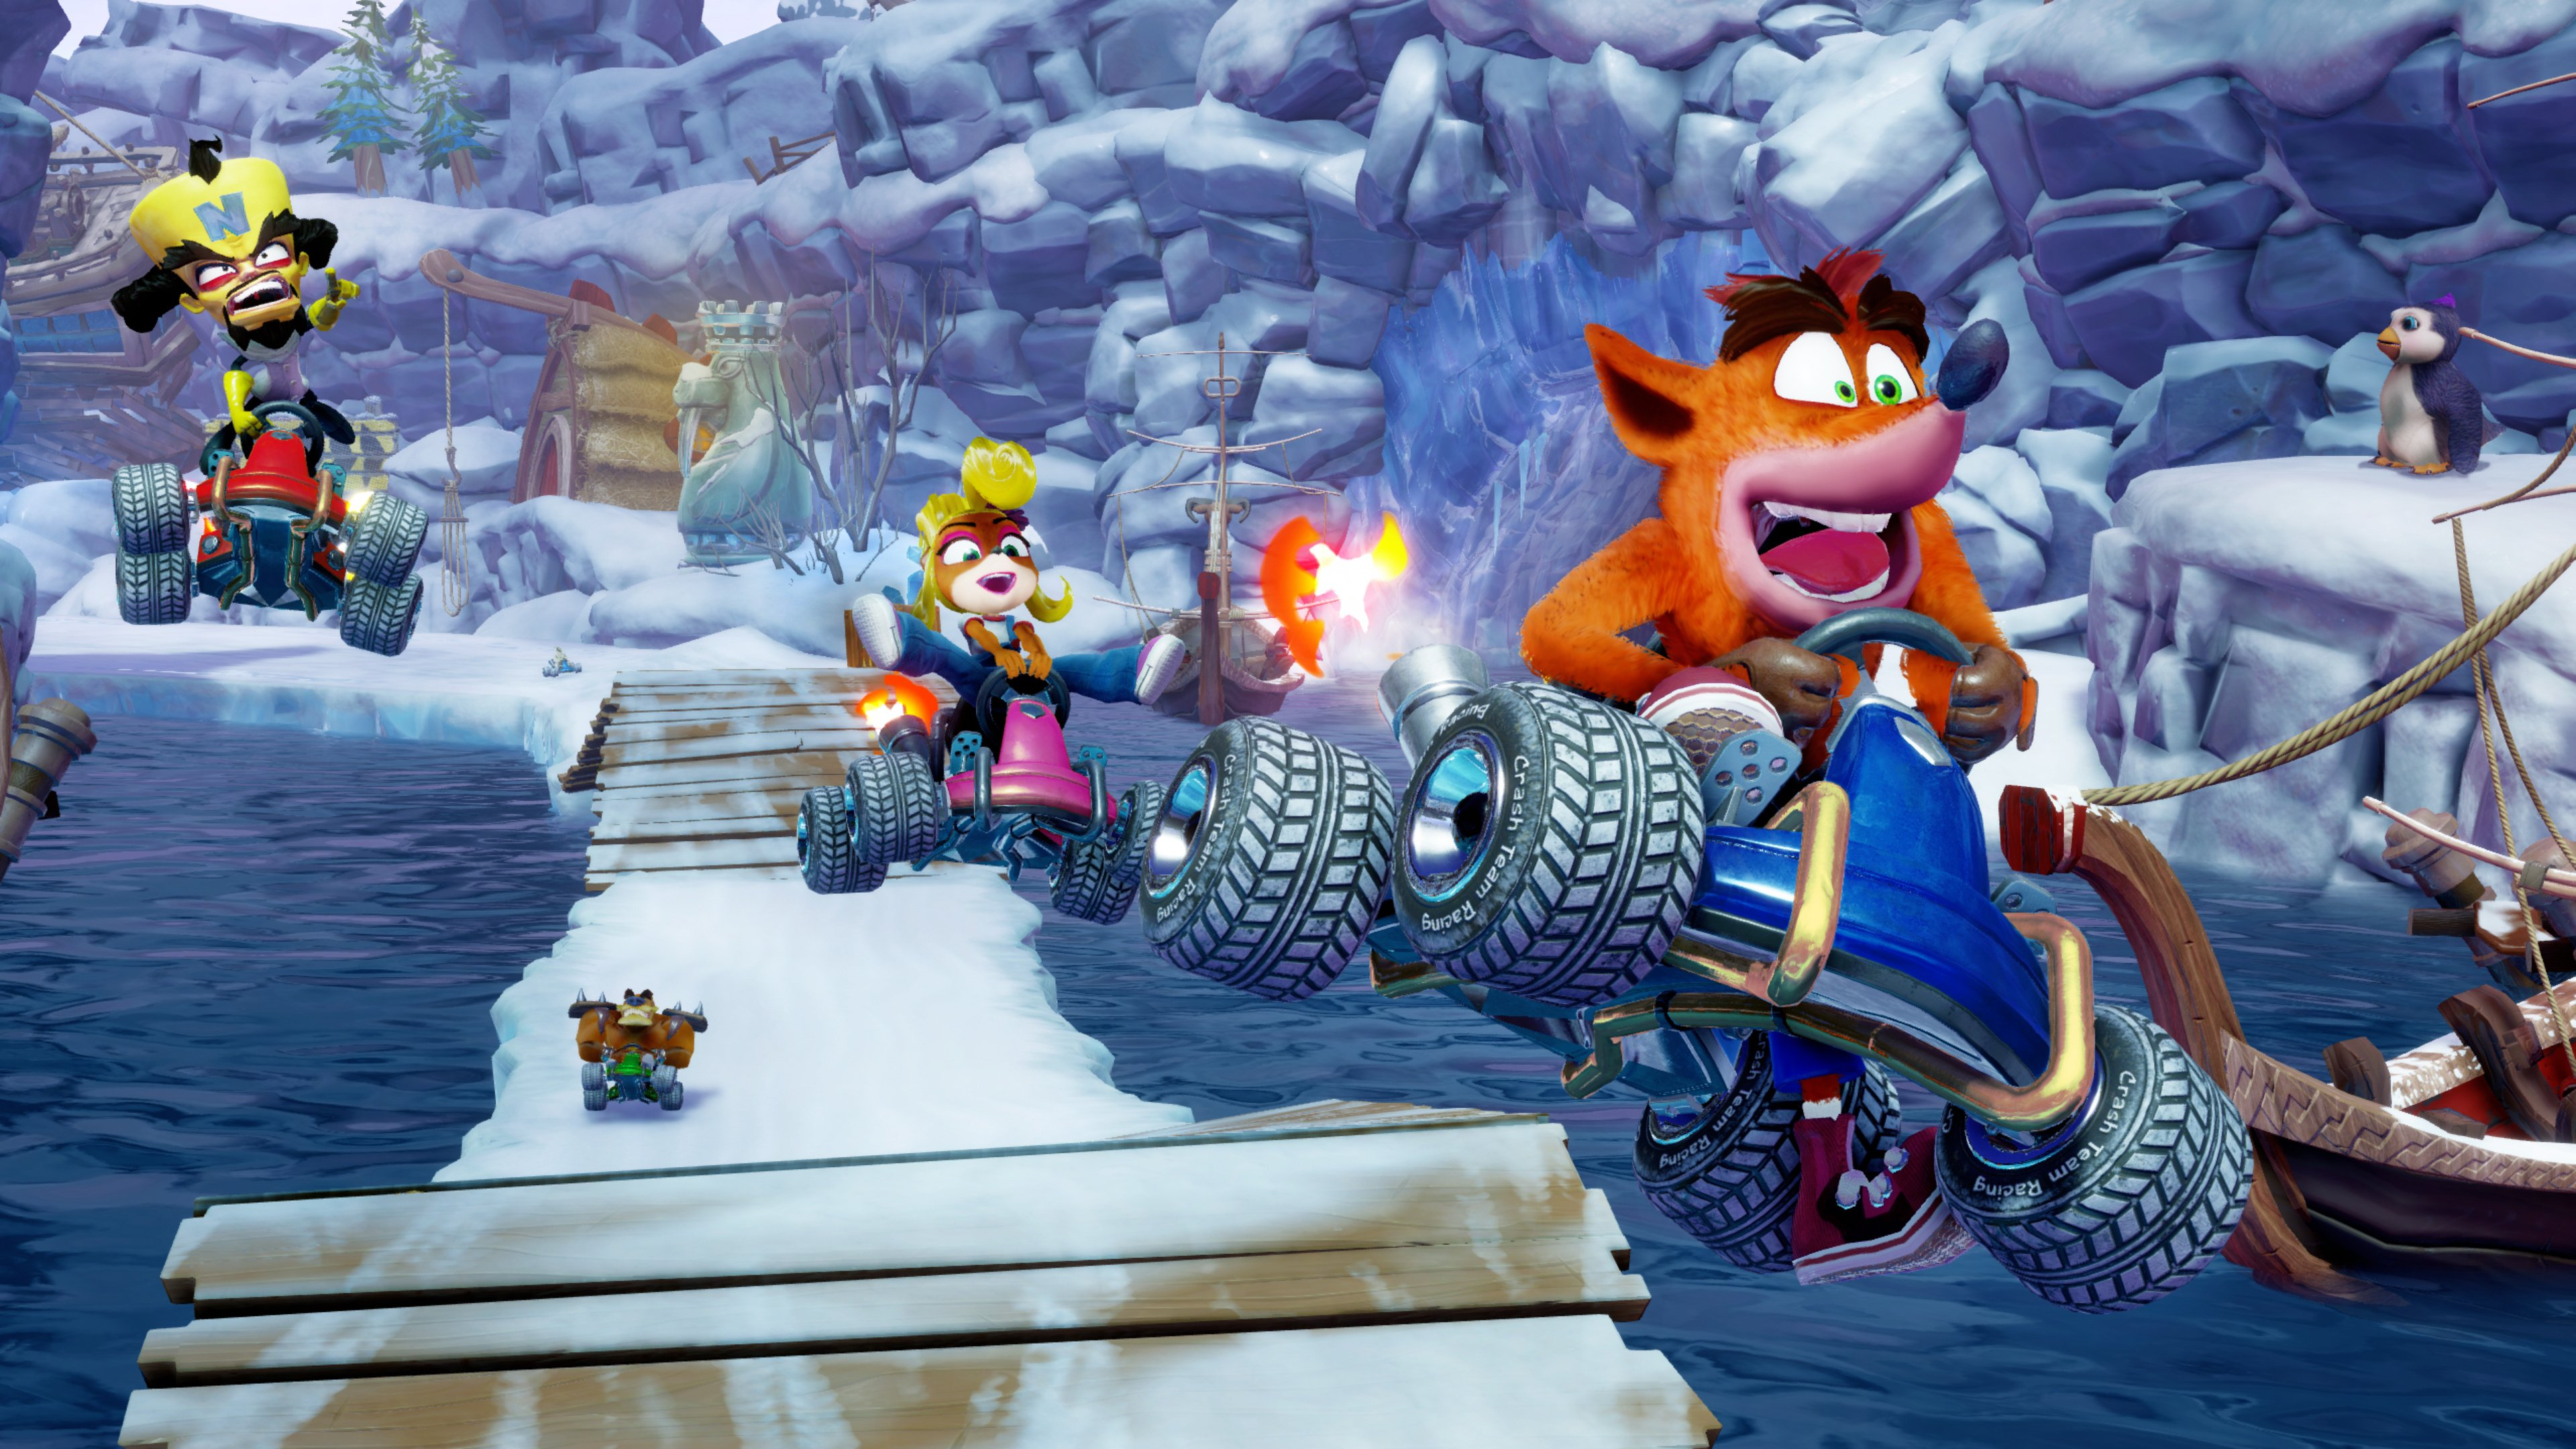 Crash Team Racing remaster comes to modern consoles in June